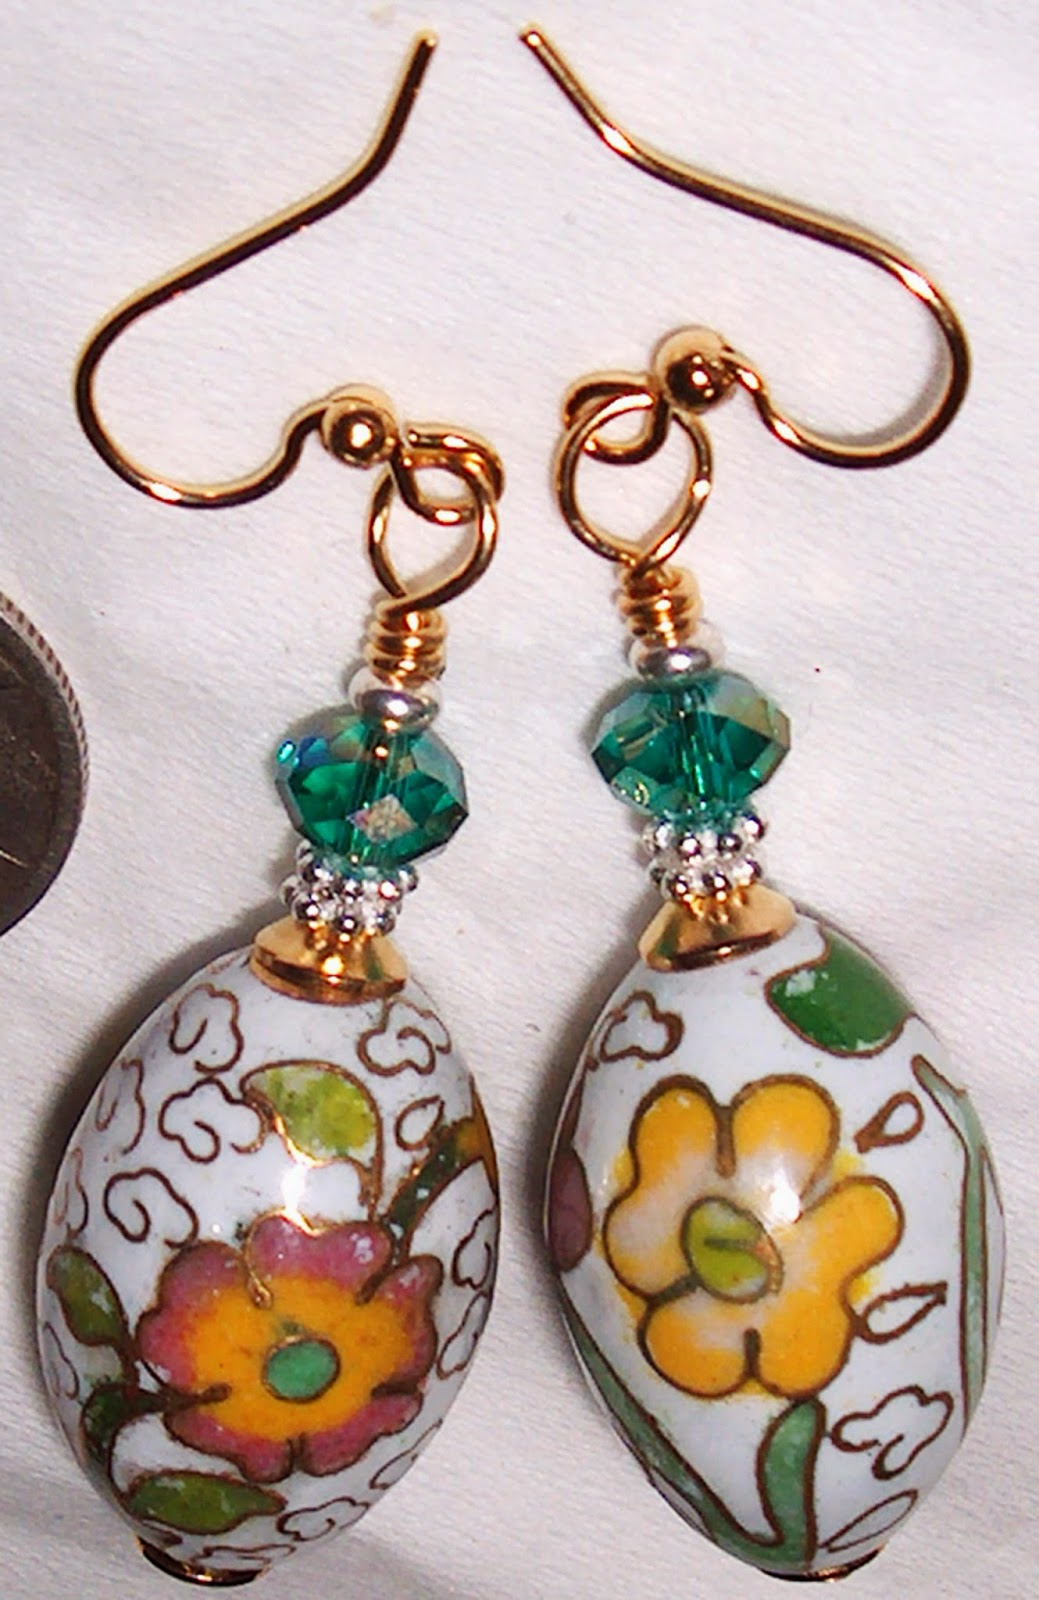 Antique Cloisonne Bead Earrings Kirsten USA